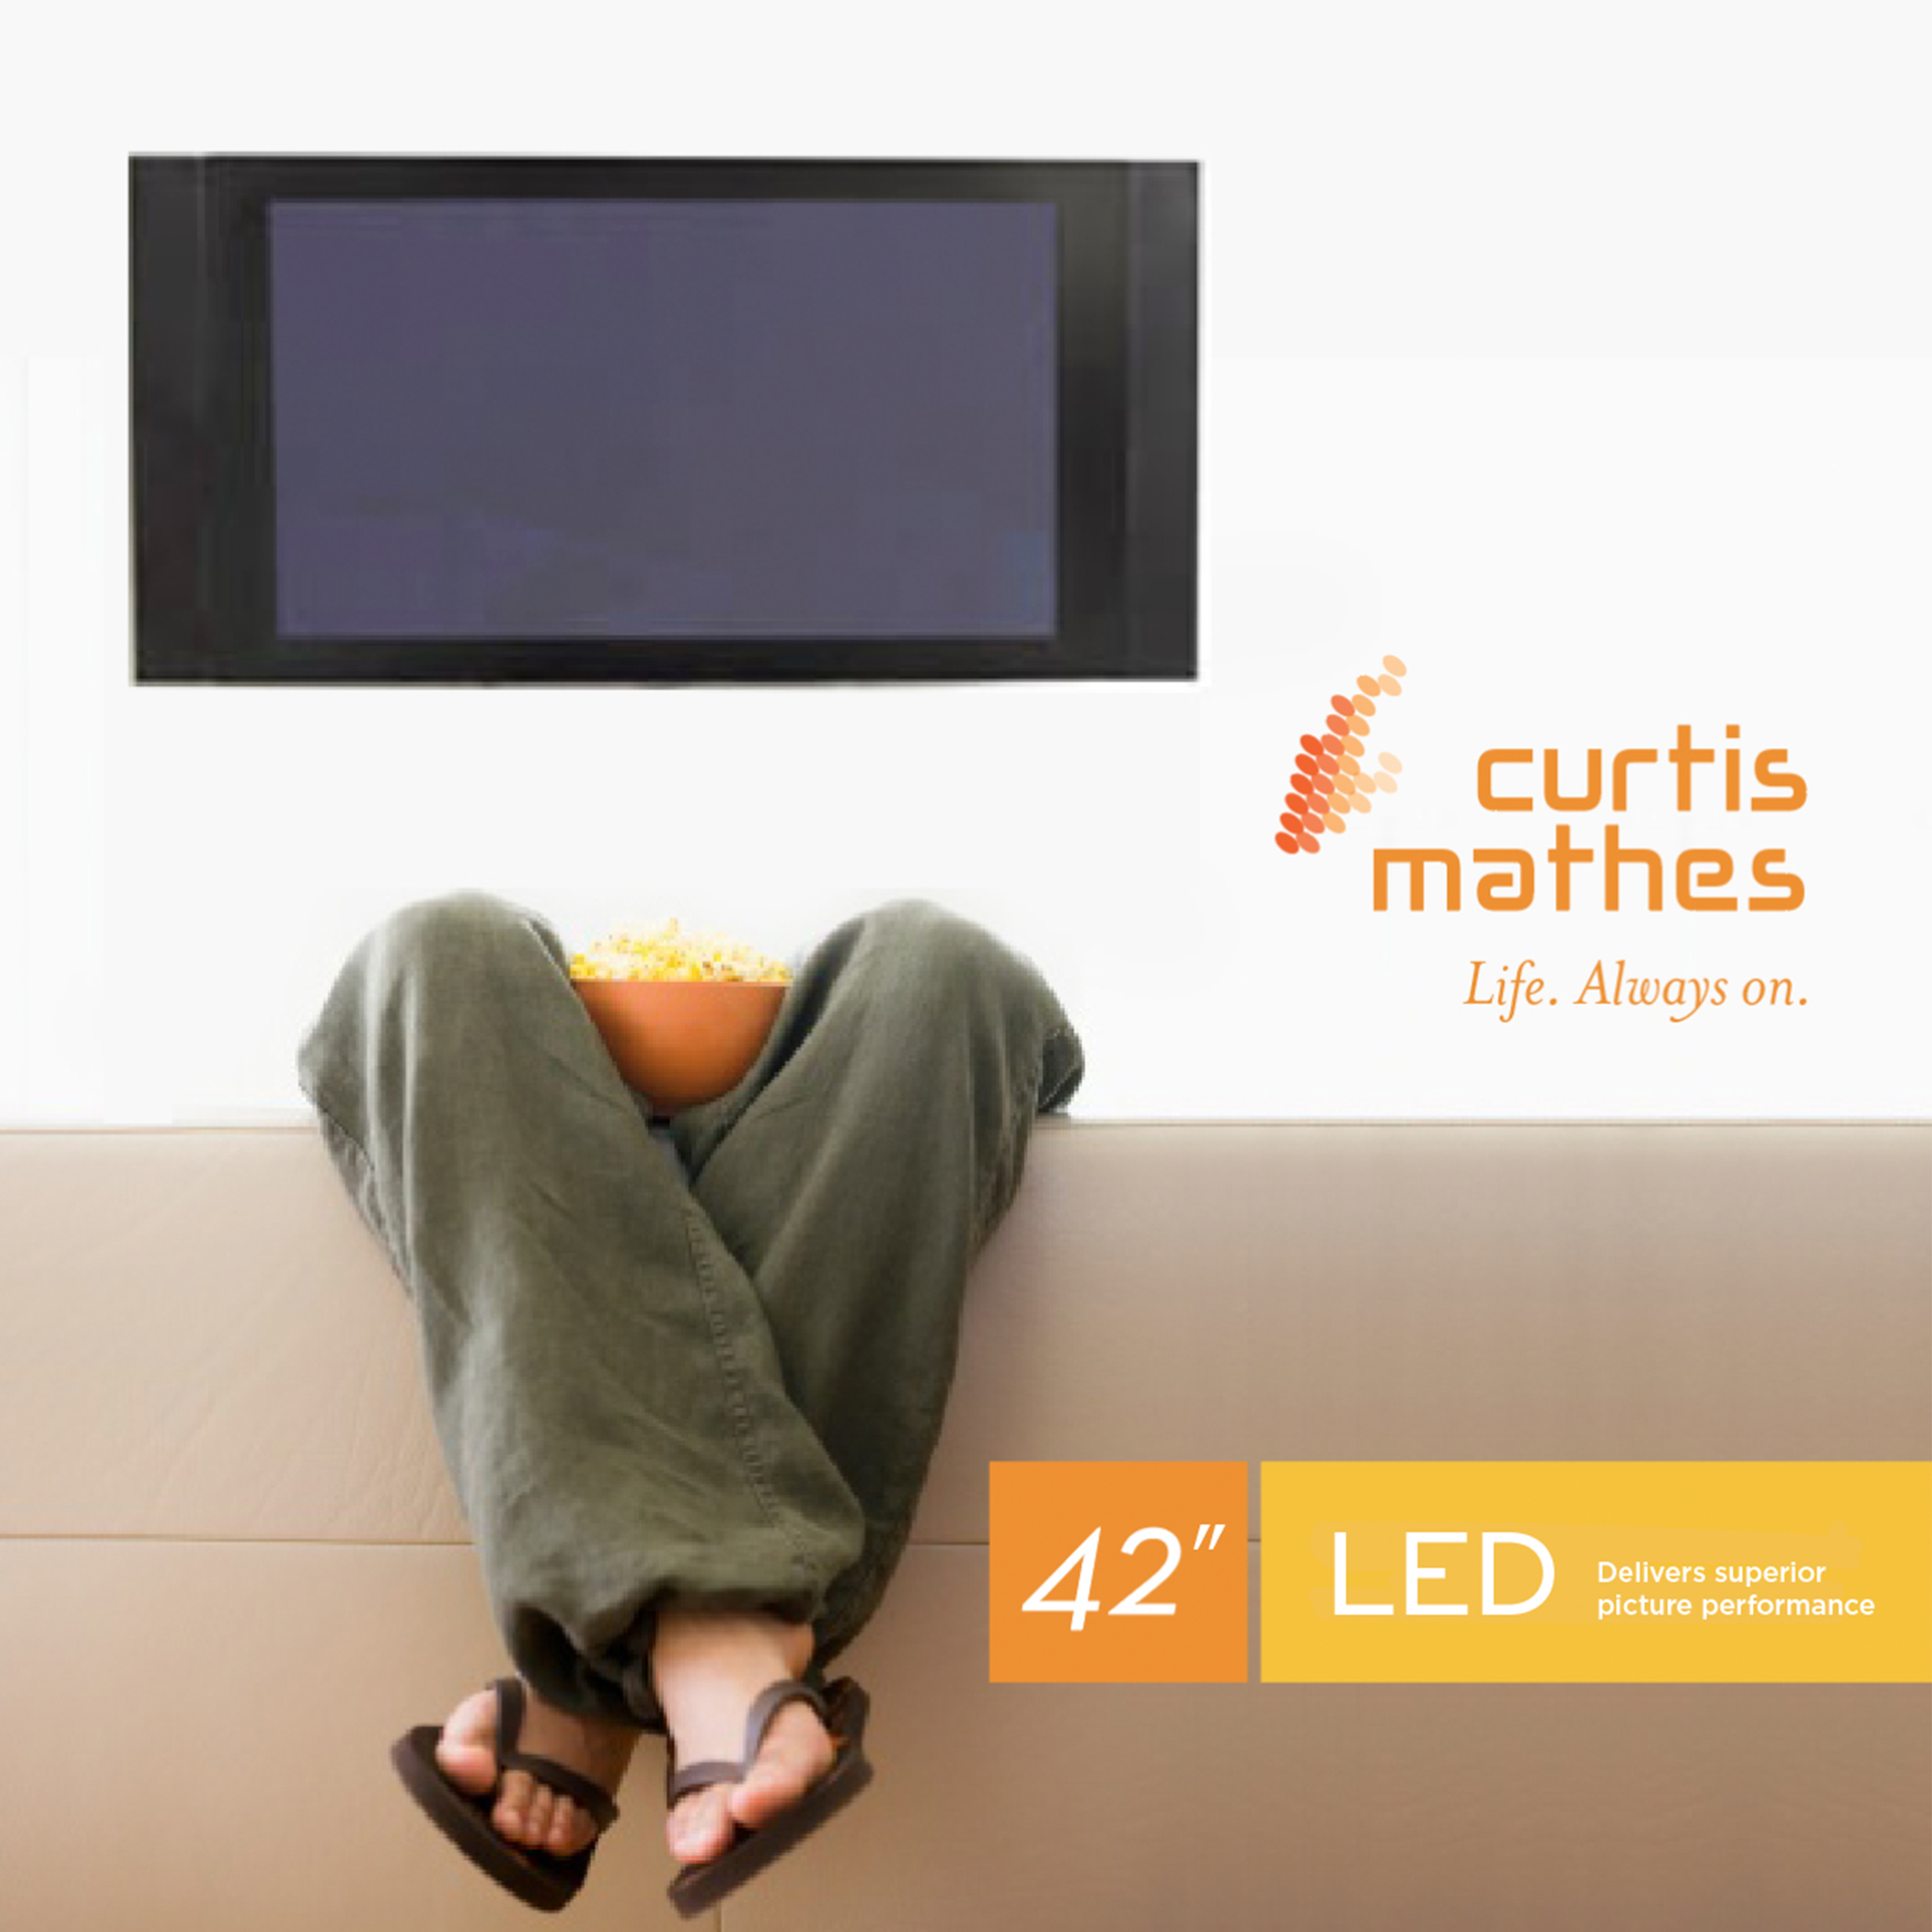 Curtis Mathes   Simplifying a technology brand for time-crunched female consumers.